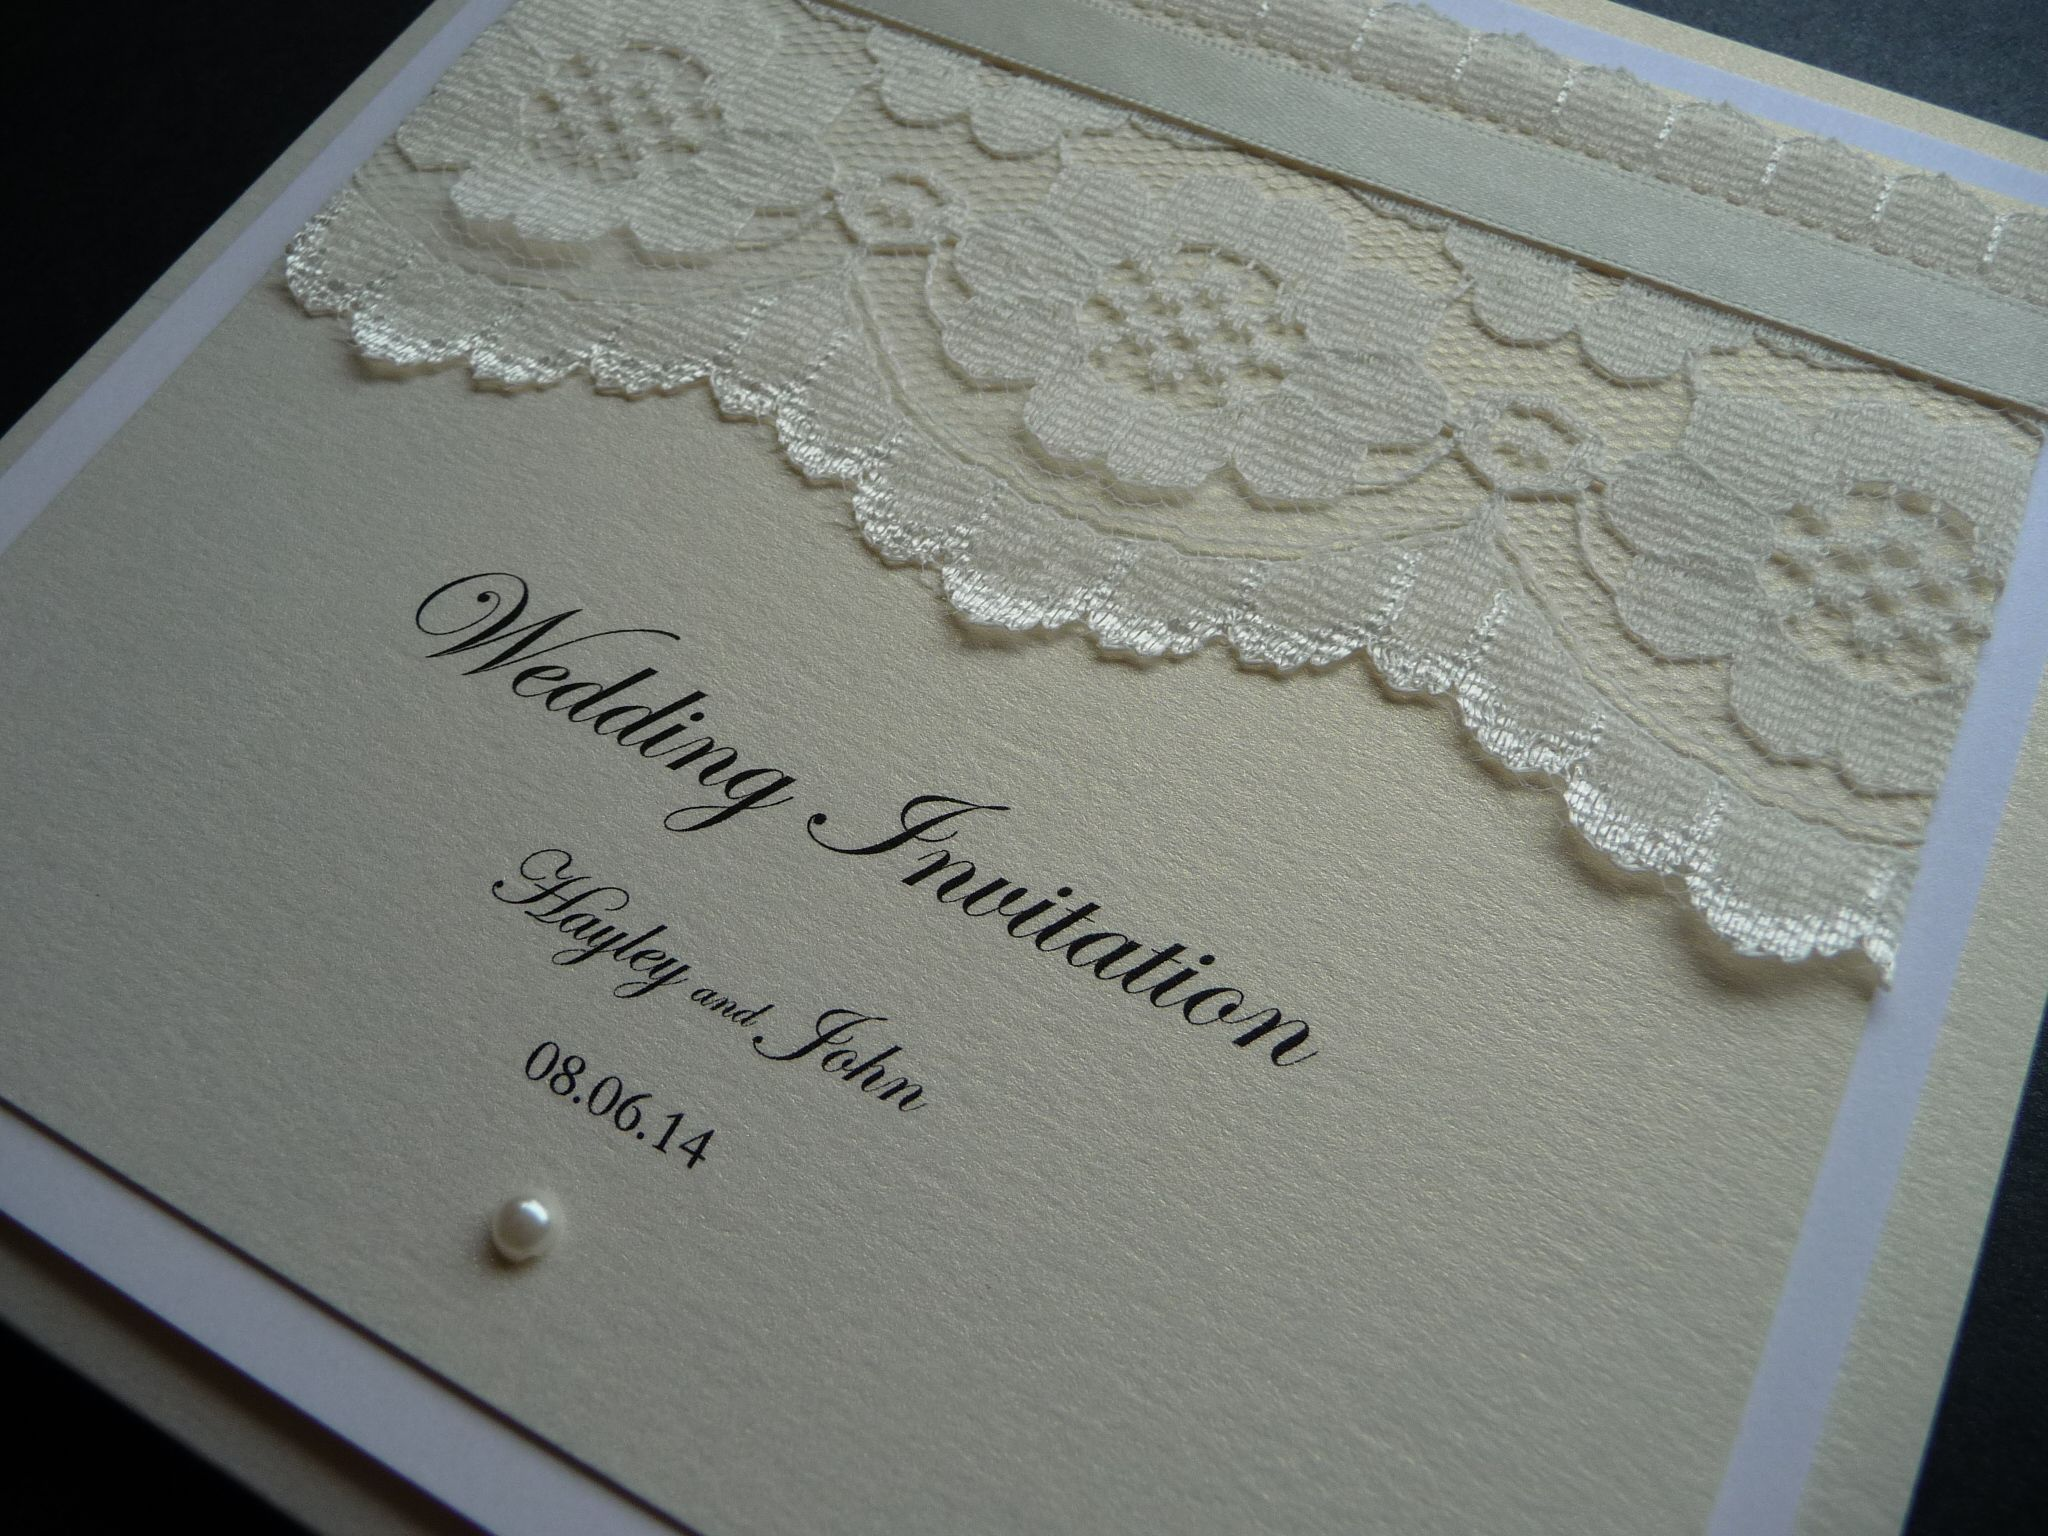 Vintage Lace Themed Wedding Invitation With Ivory And White Detailing A Pearl: Lace Inspired Wedding Invitations At Websimilar.org